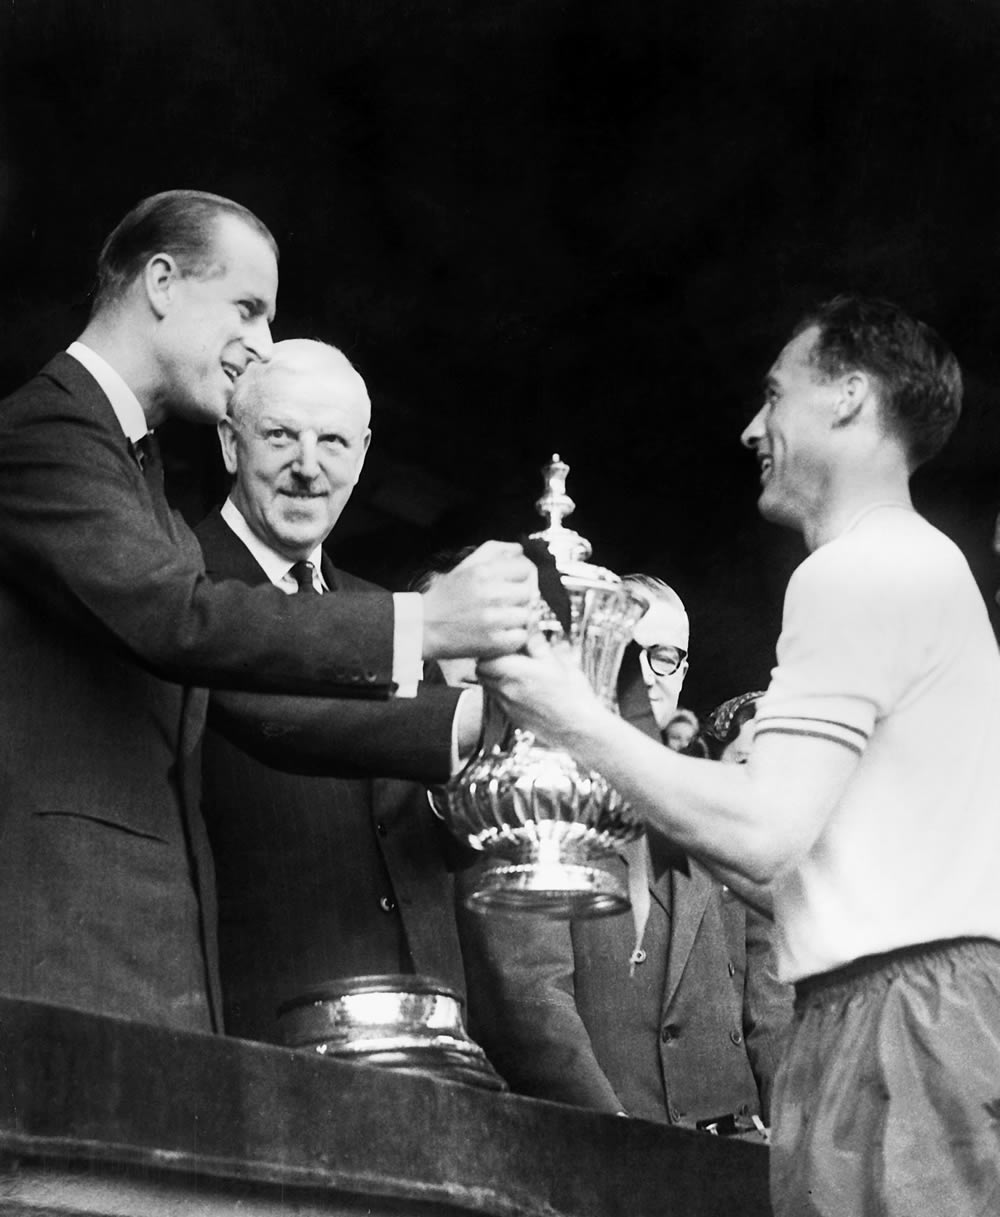 Prince Philip presents the 1958 FA Cup to Nat Lofthouse with Sir Stanley Rous in the background